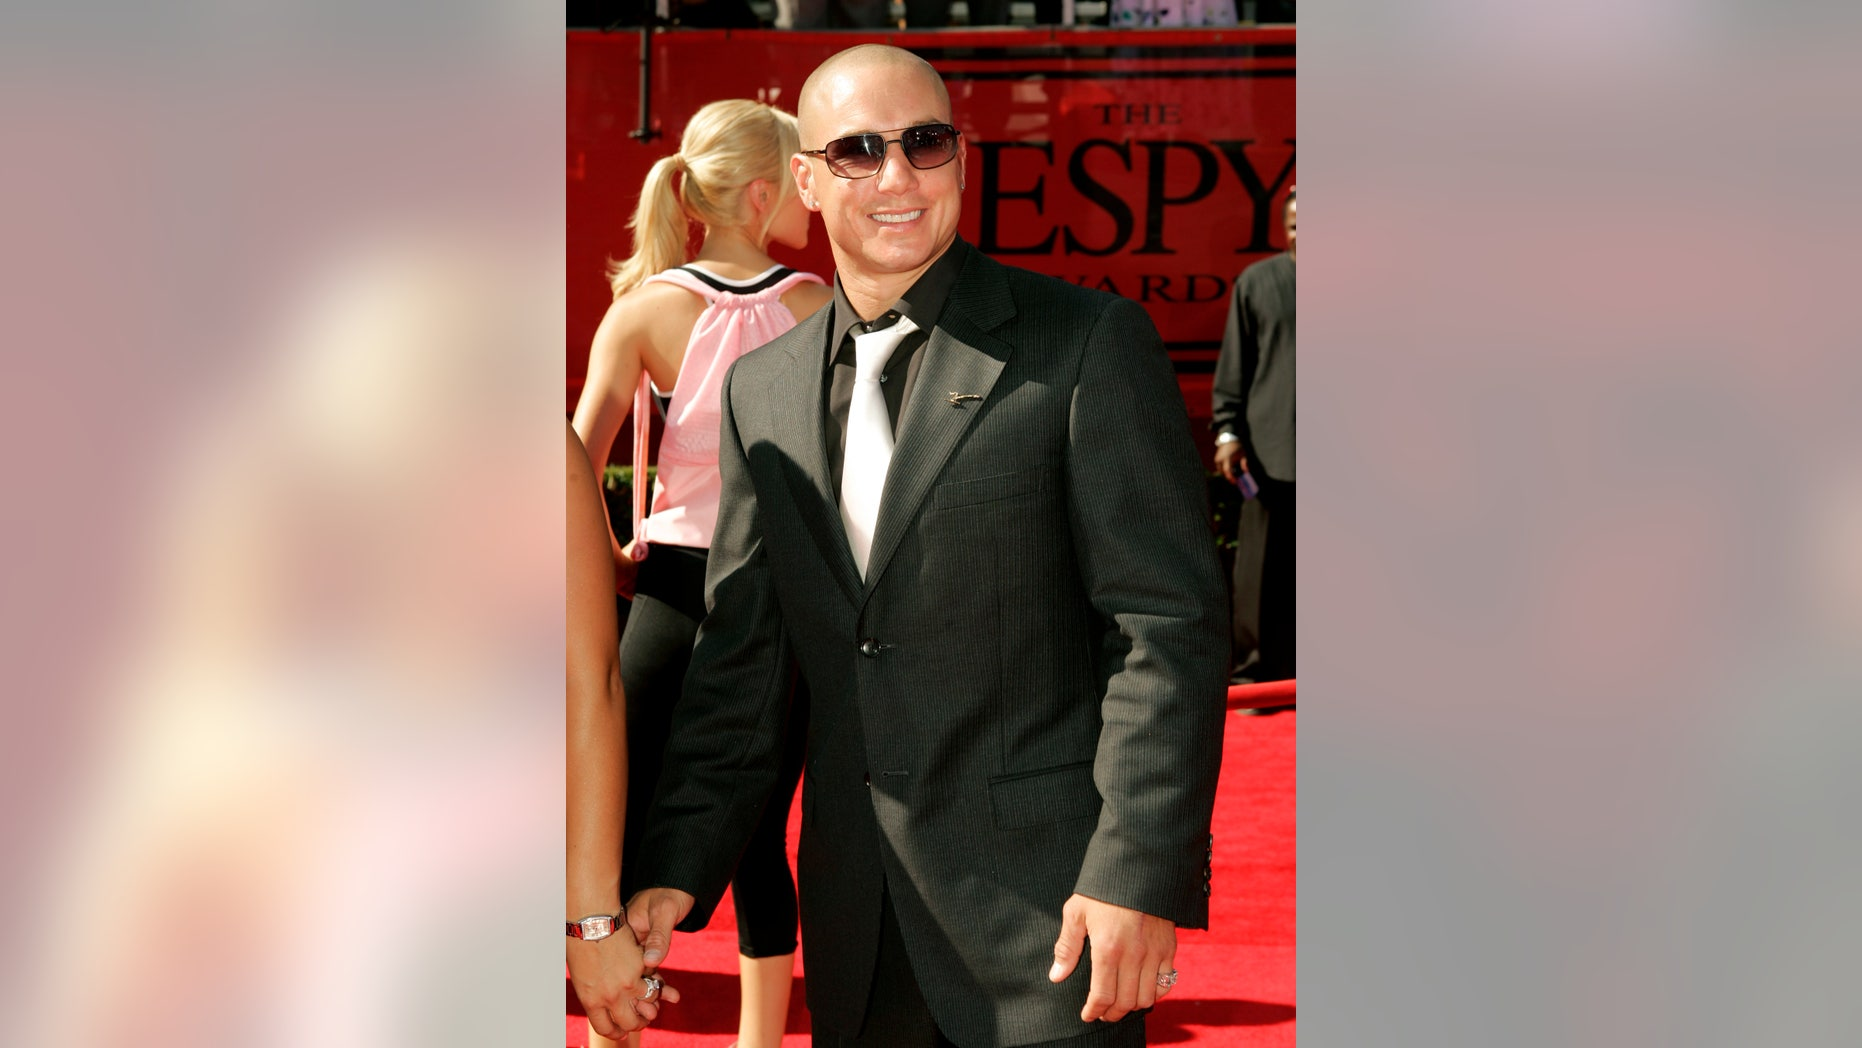 Professional BMX rider Dave Mirra poses as he arrives at the 13th annual ESPY Awards at the Kodak Theatre in Hollywood July 13, 2005.